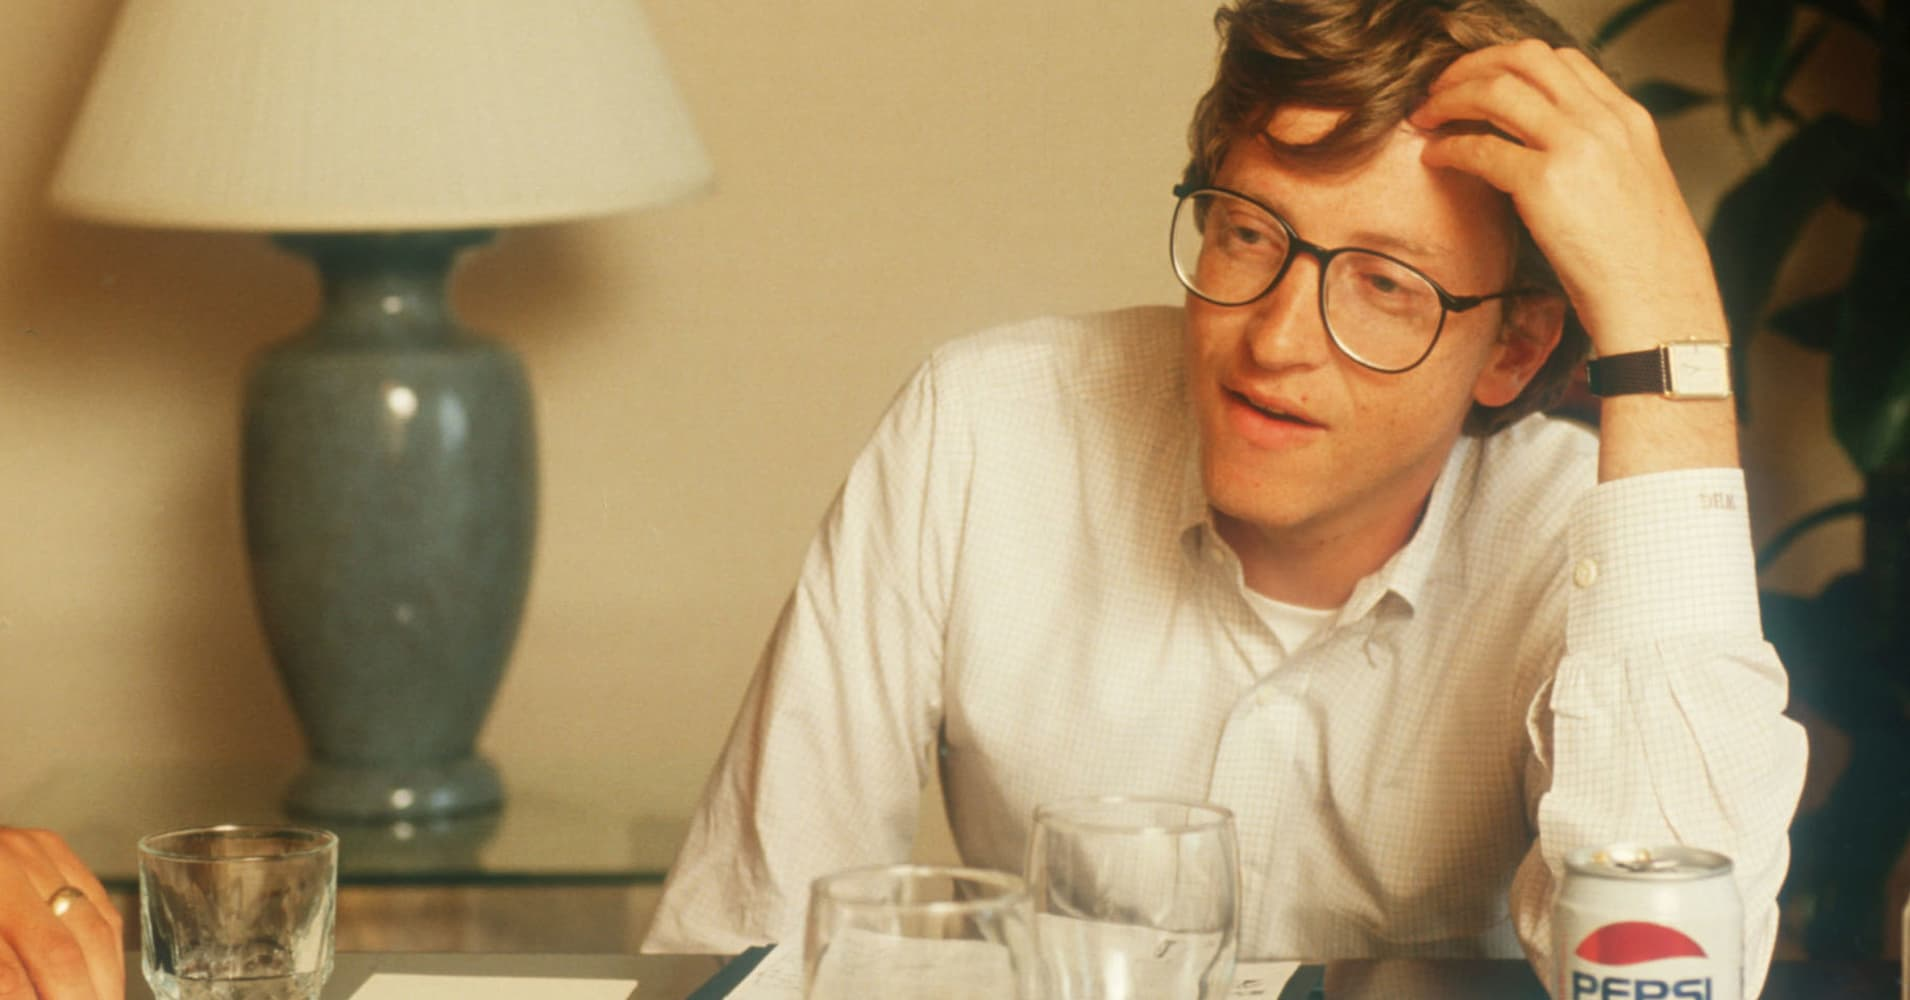 Microsoft co-founder Bill Gates, at age 32, in a meeting on January 1, 1988.